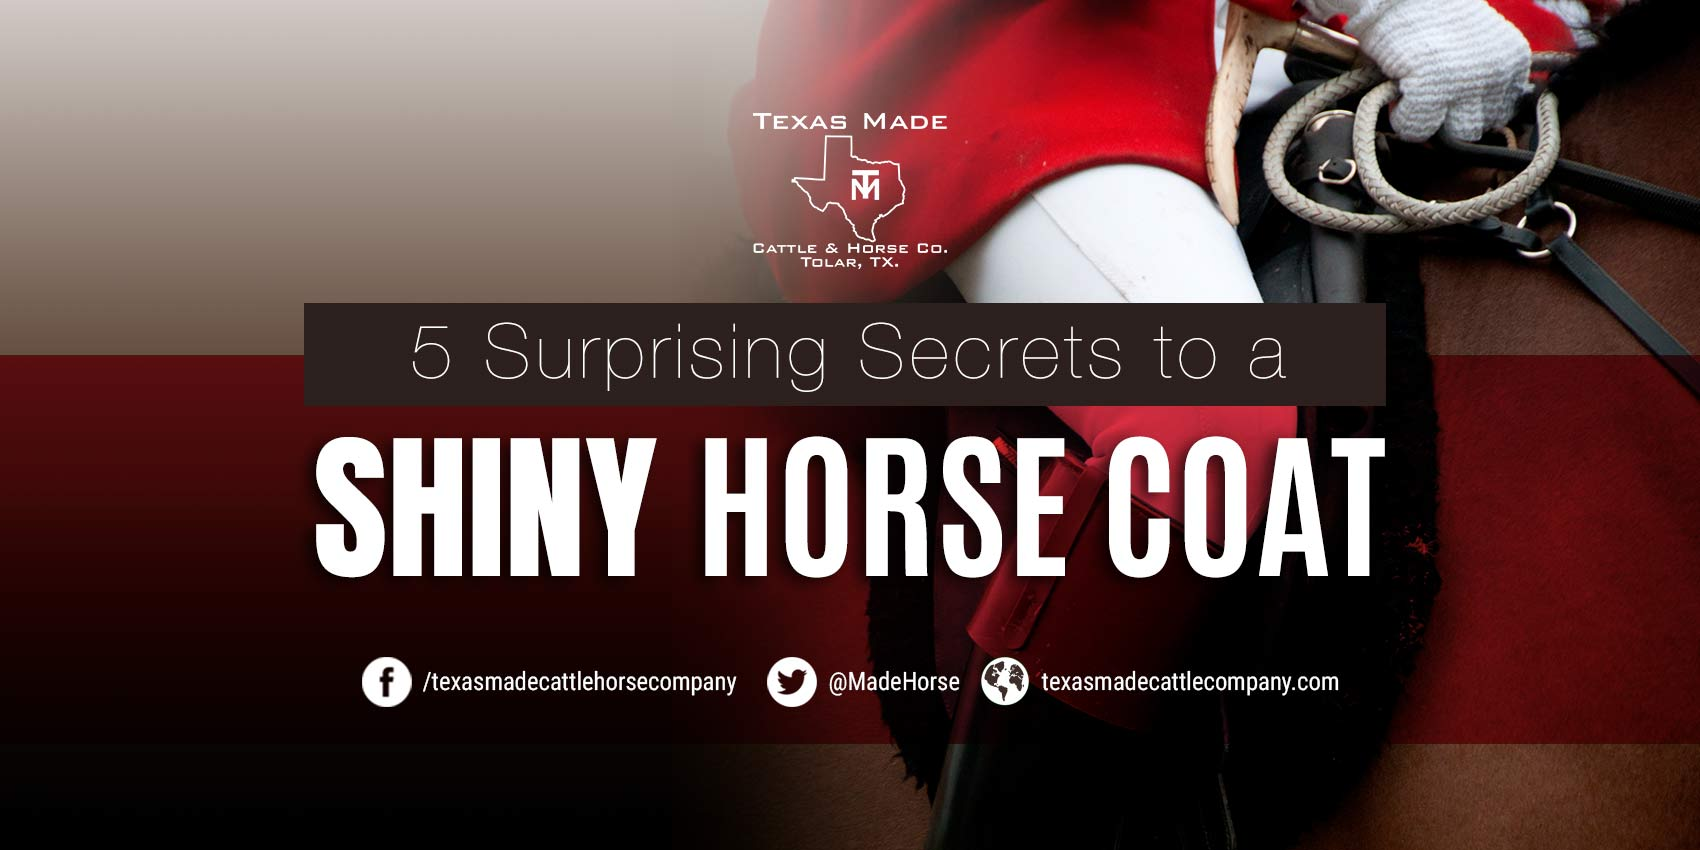 5 Surprising Secrets to a Shiny Horse Coat